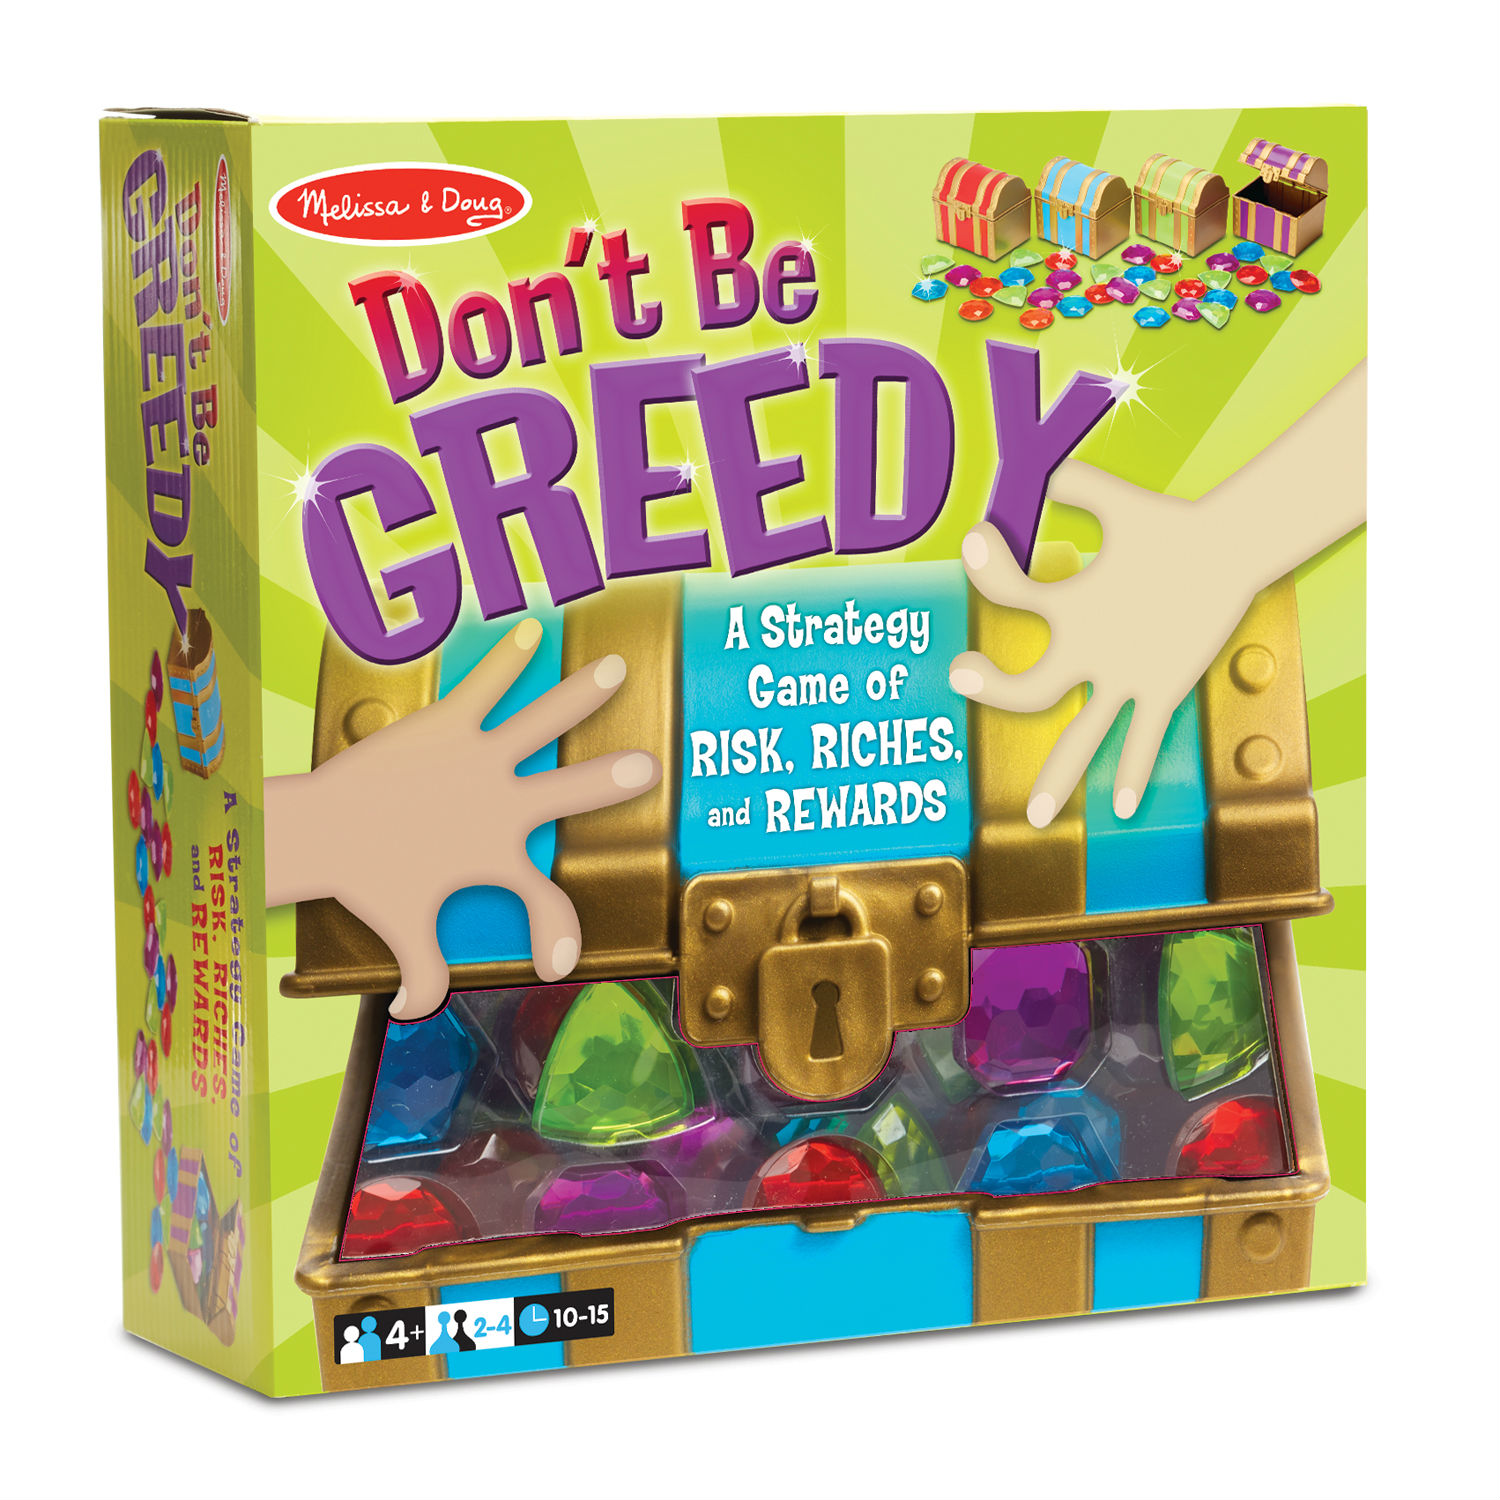 Don't Be Greedy - Scratch and Dent